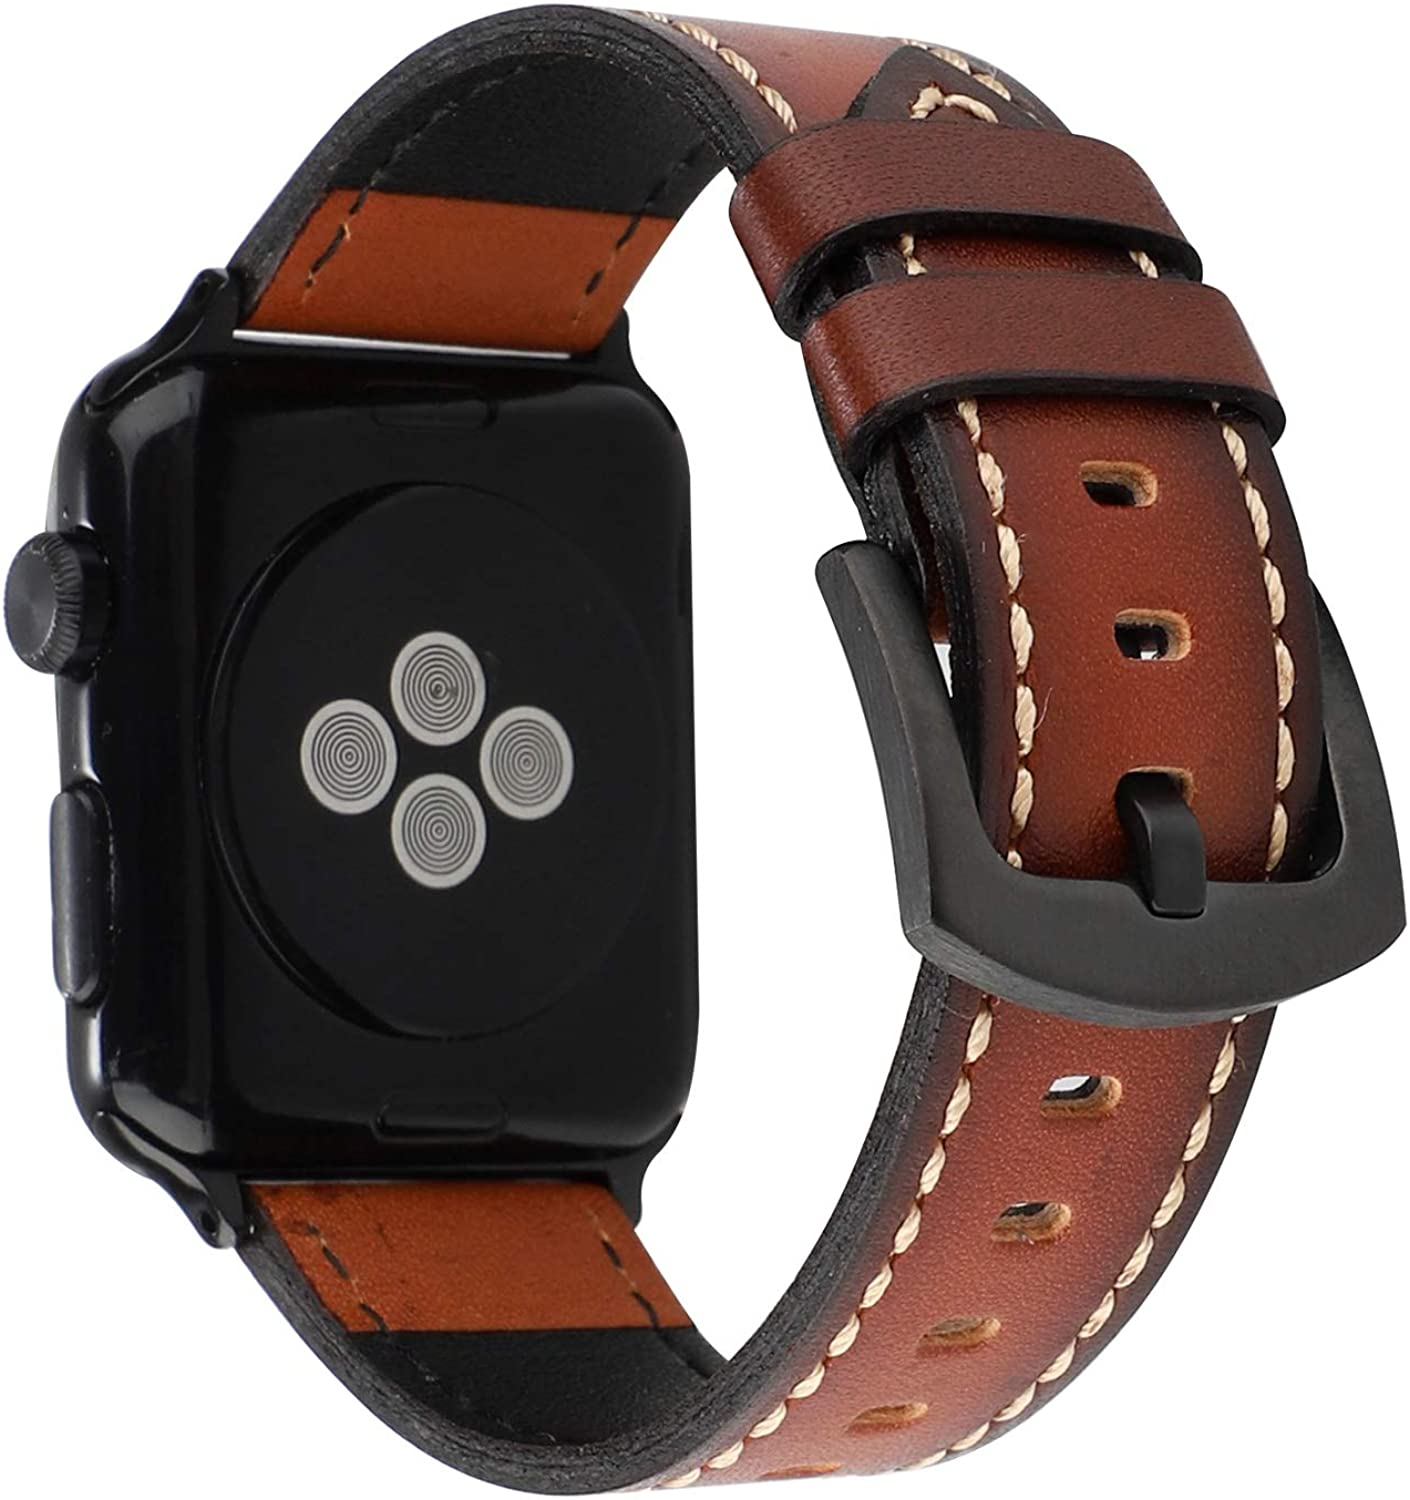 MeShow 44mm 42mm Handmade Vintage Calf Genuine Leather Strap Wrist Band with Secure Metal Clasp Buckle Compatible for Apple Watch Series SE 6 5 4 3 2 1 (Not fit for iWatch 40MM/38MM)